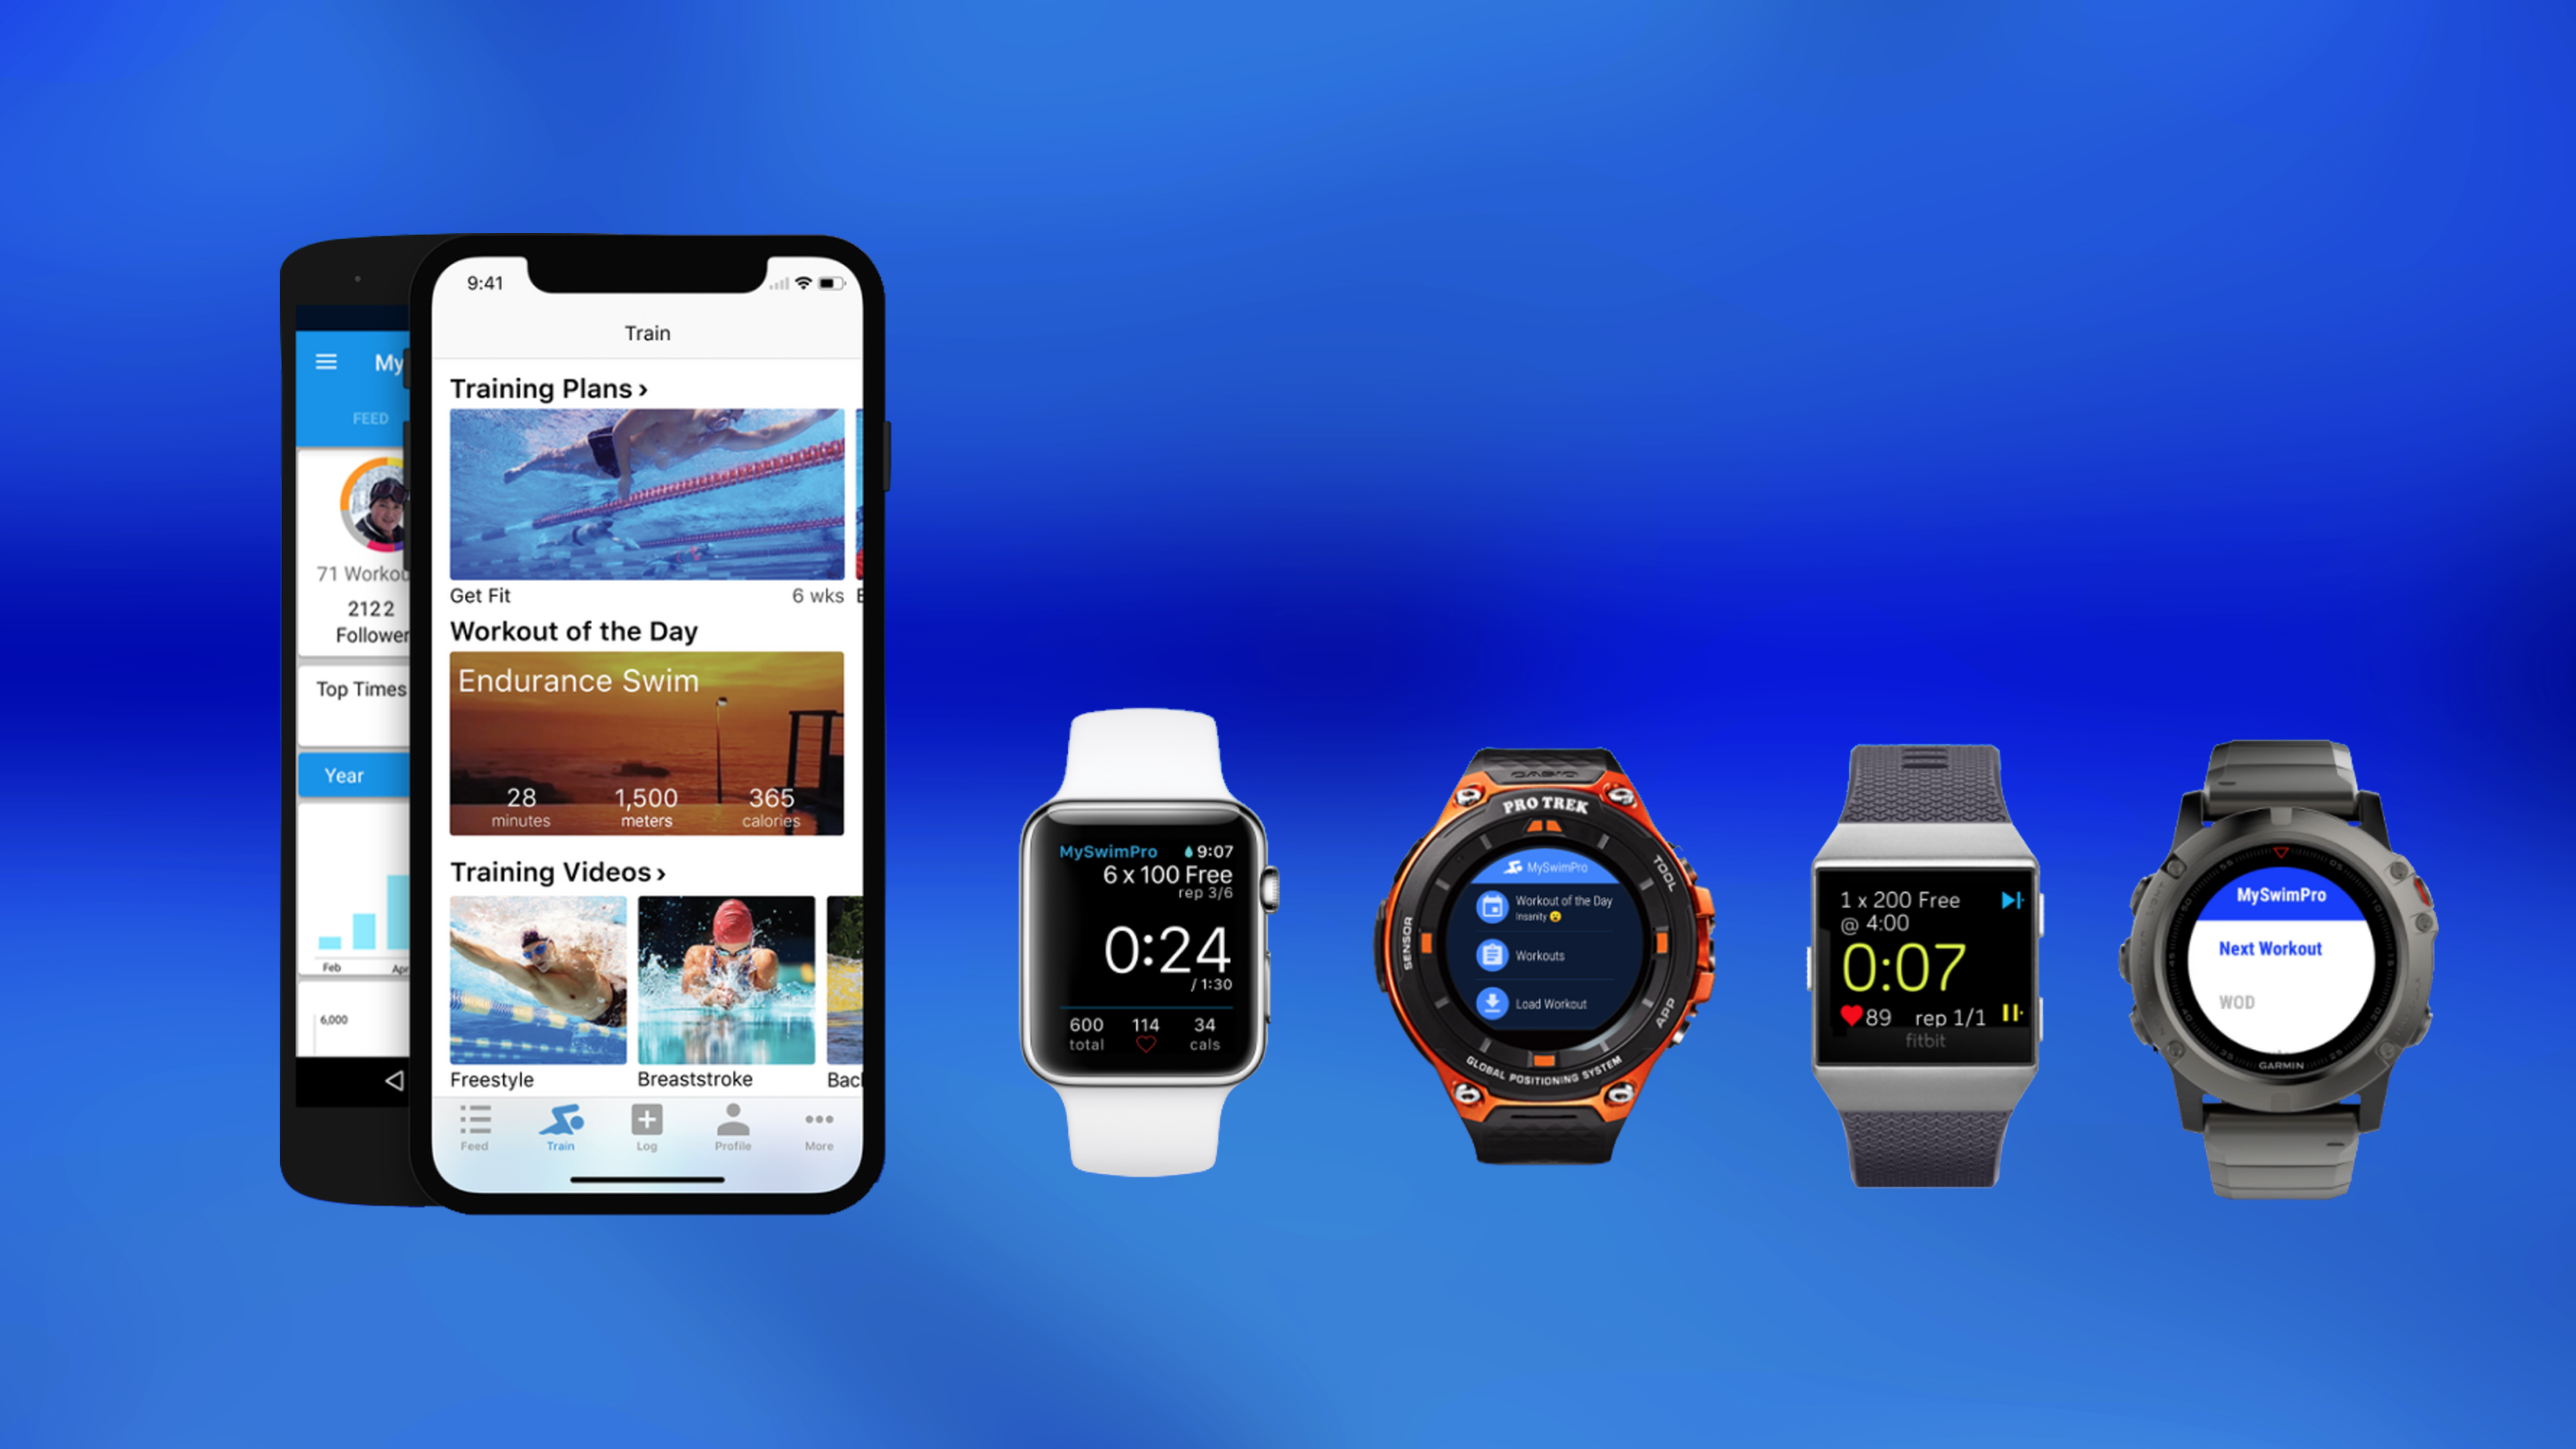 Compatible Smartwatches for the MySwimPro App - MySwimPro